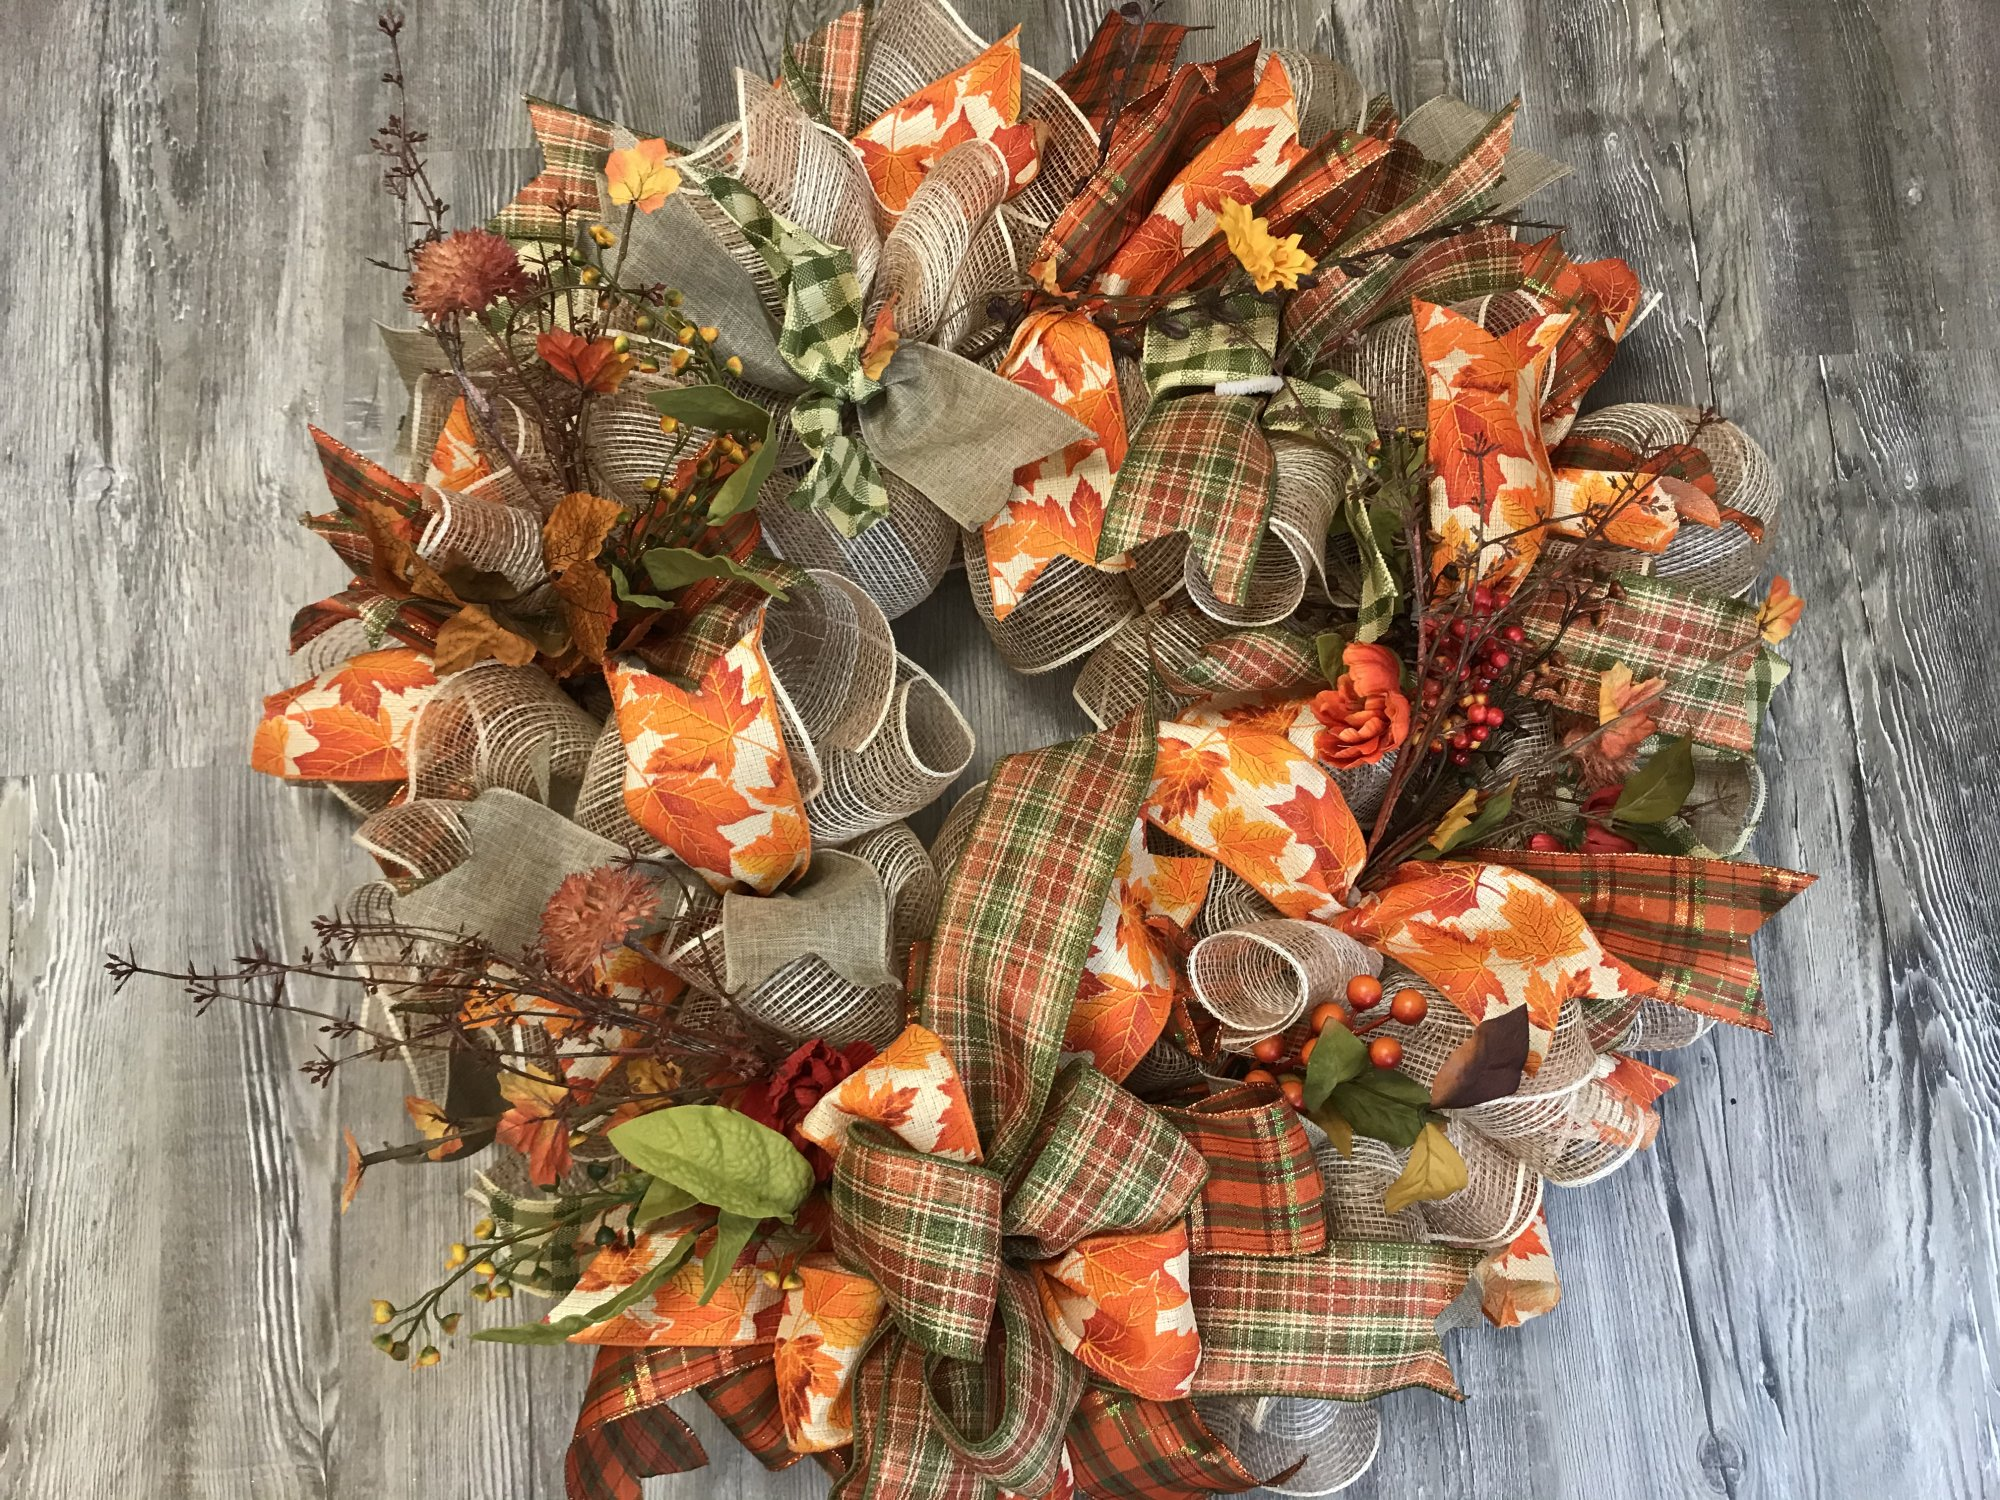 Fall Mesh and Floral Ruffle Wreath Kit - 24